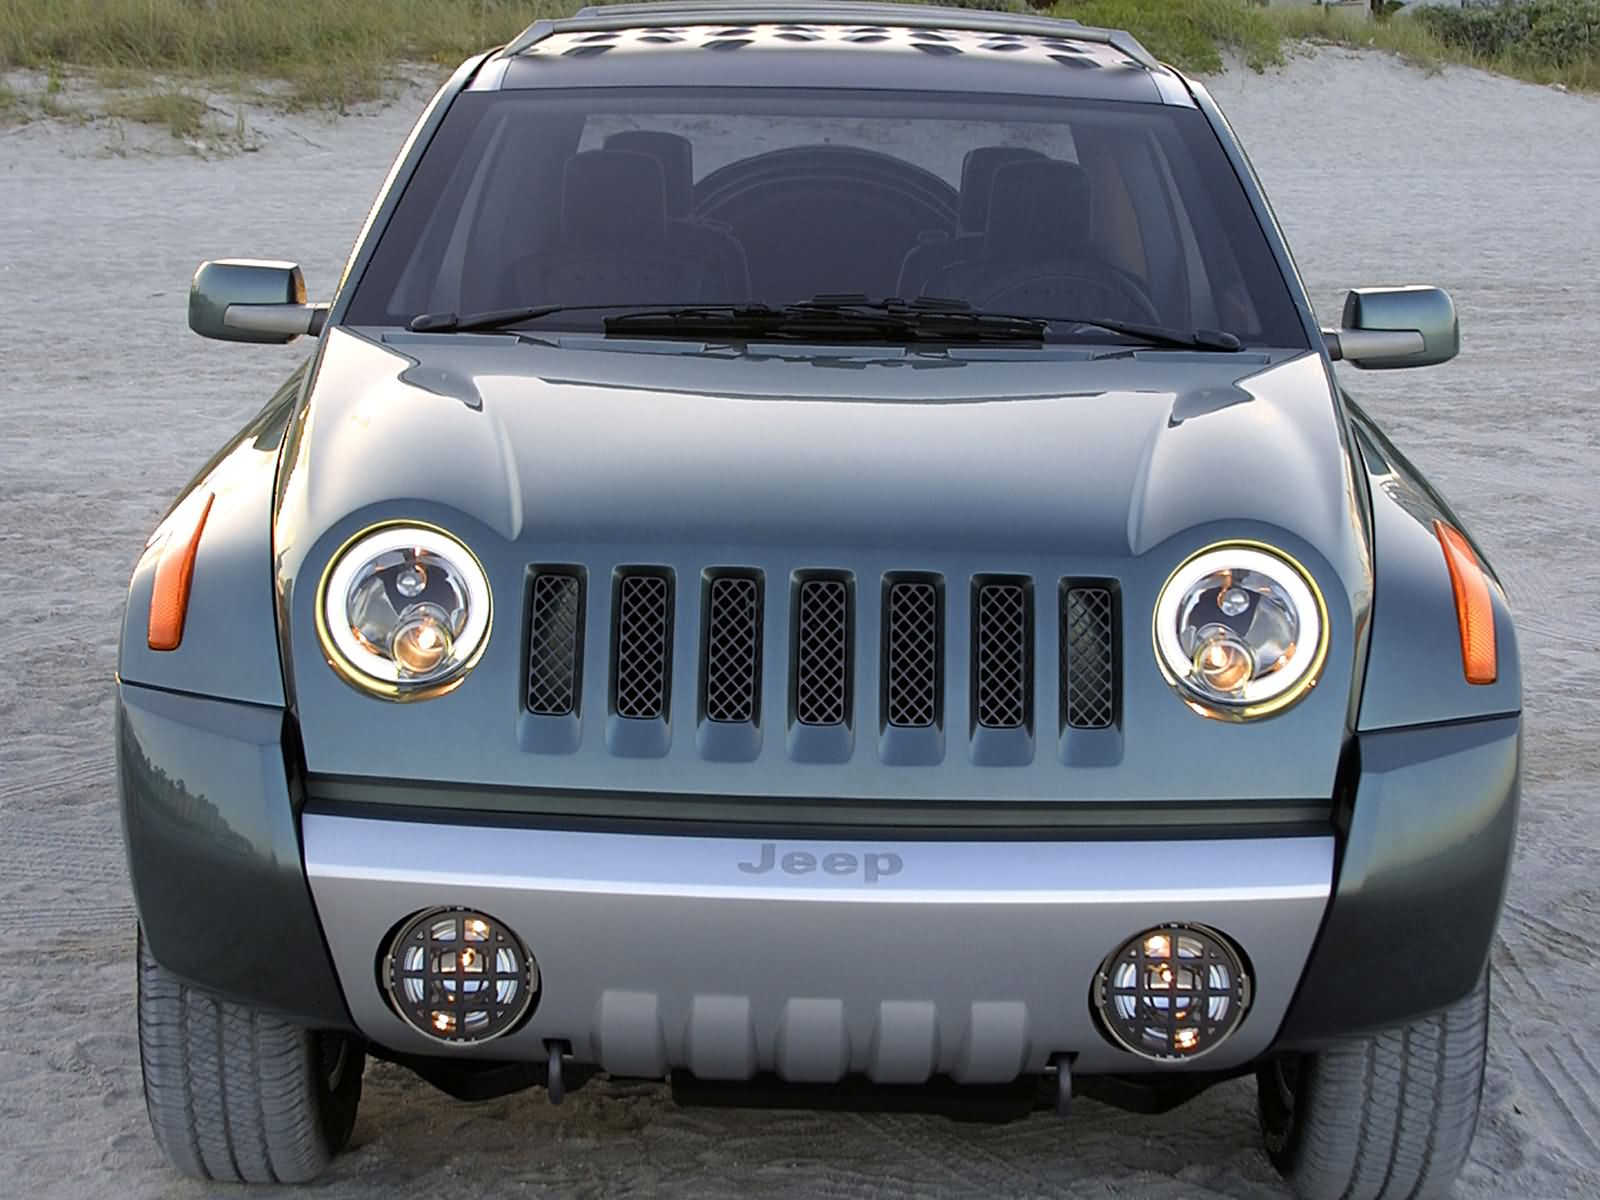 2002 Jeep Compass Concept photo - 3